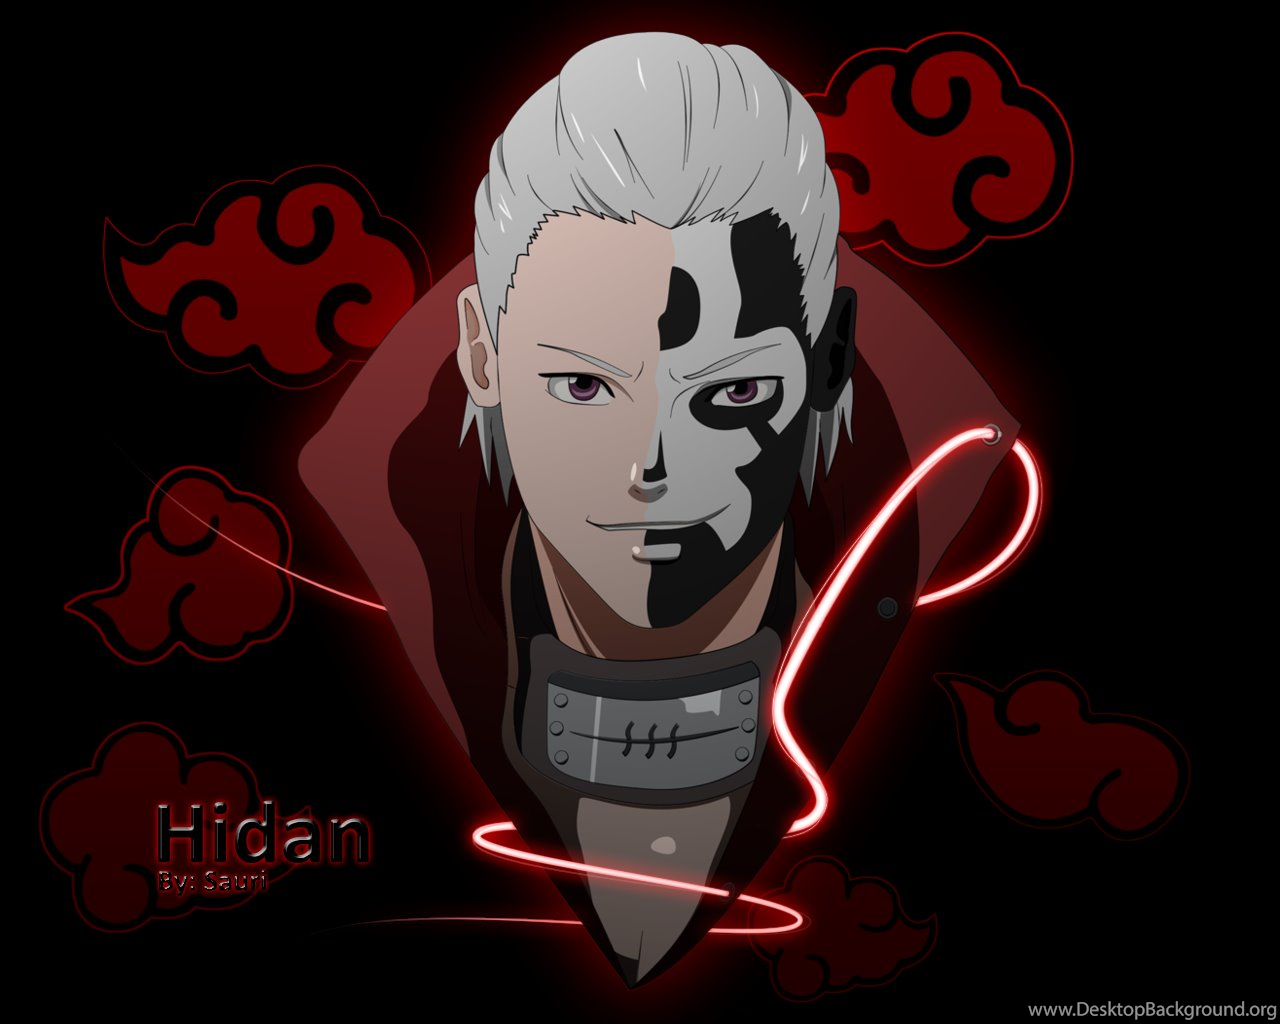 34 Gambar Hidan Akatsuki Wallpapers Terlengkap Desktop